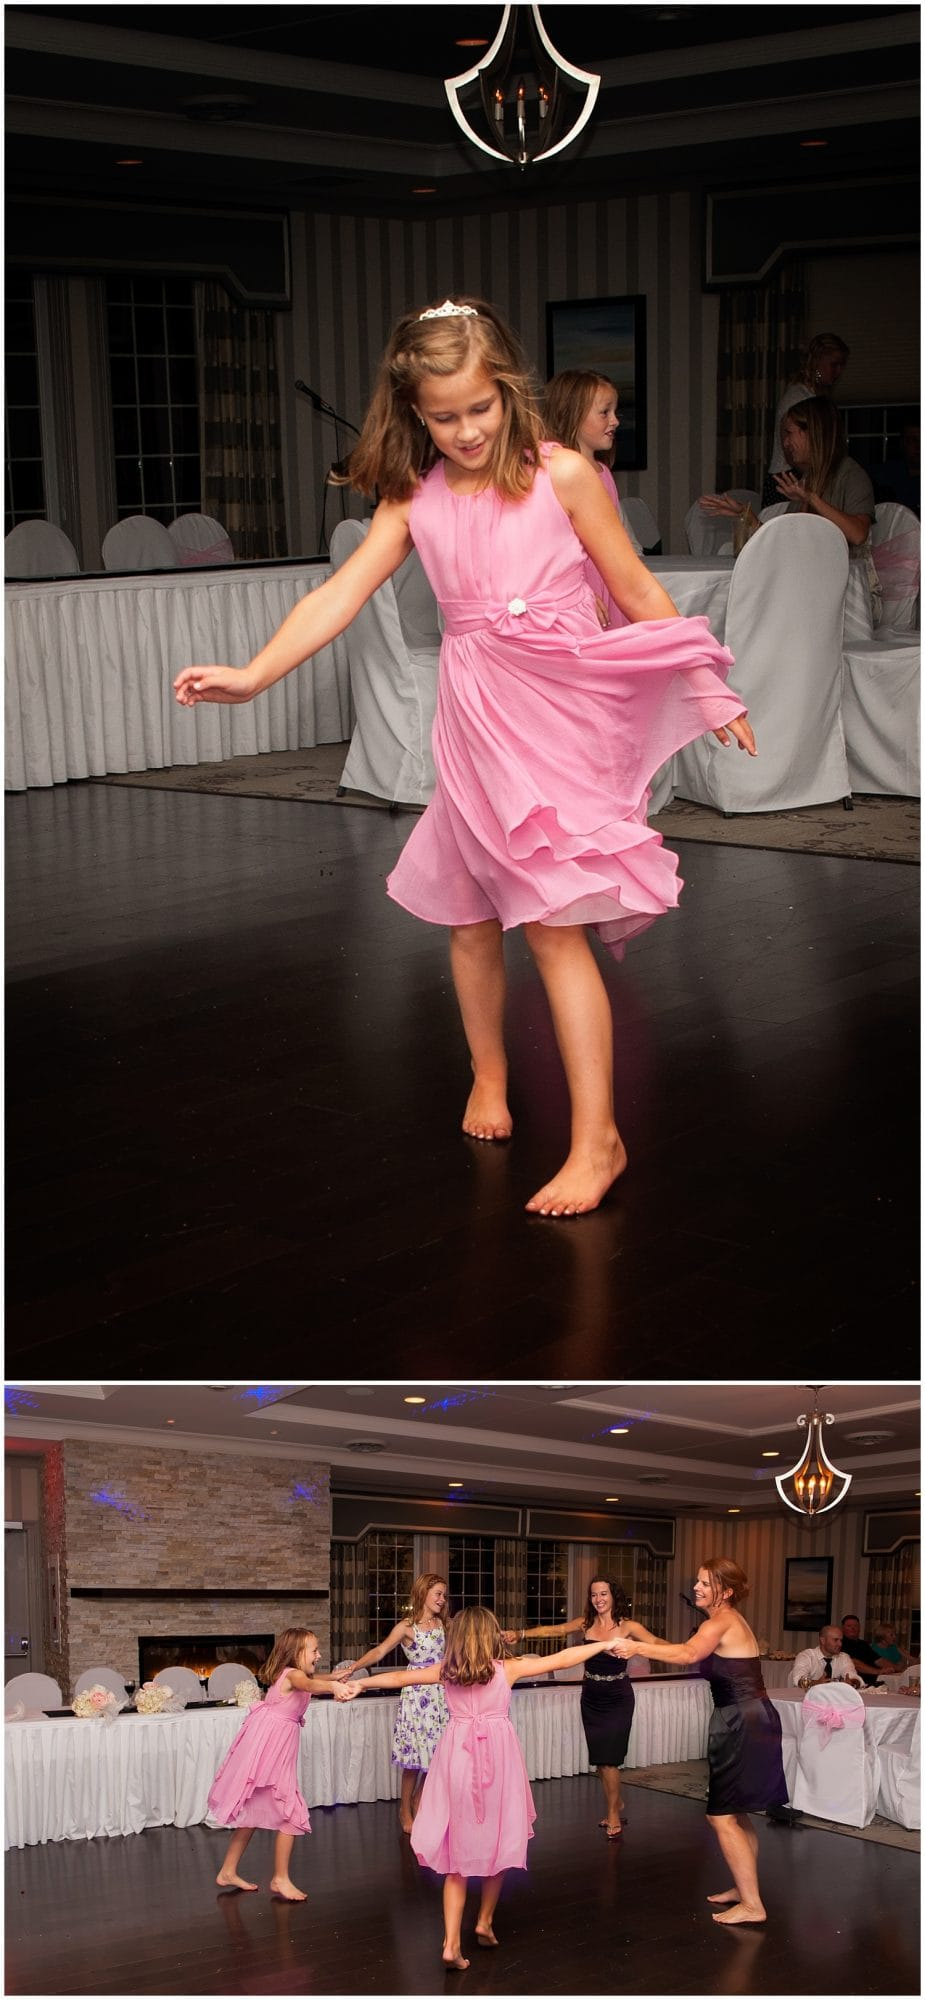 A flower girl dances during the wedding reception at the Ashburn Golf Club in Halifax Nova Scotia.